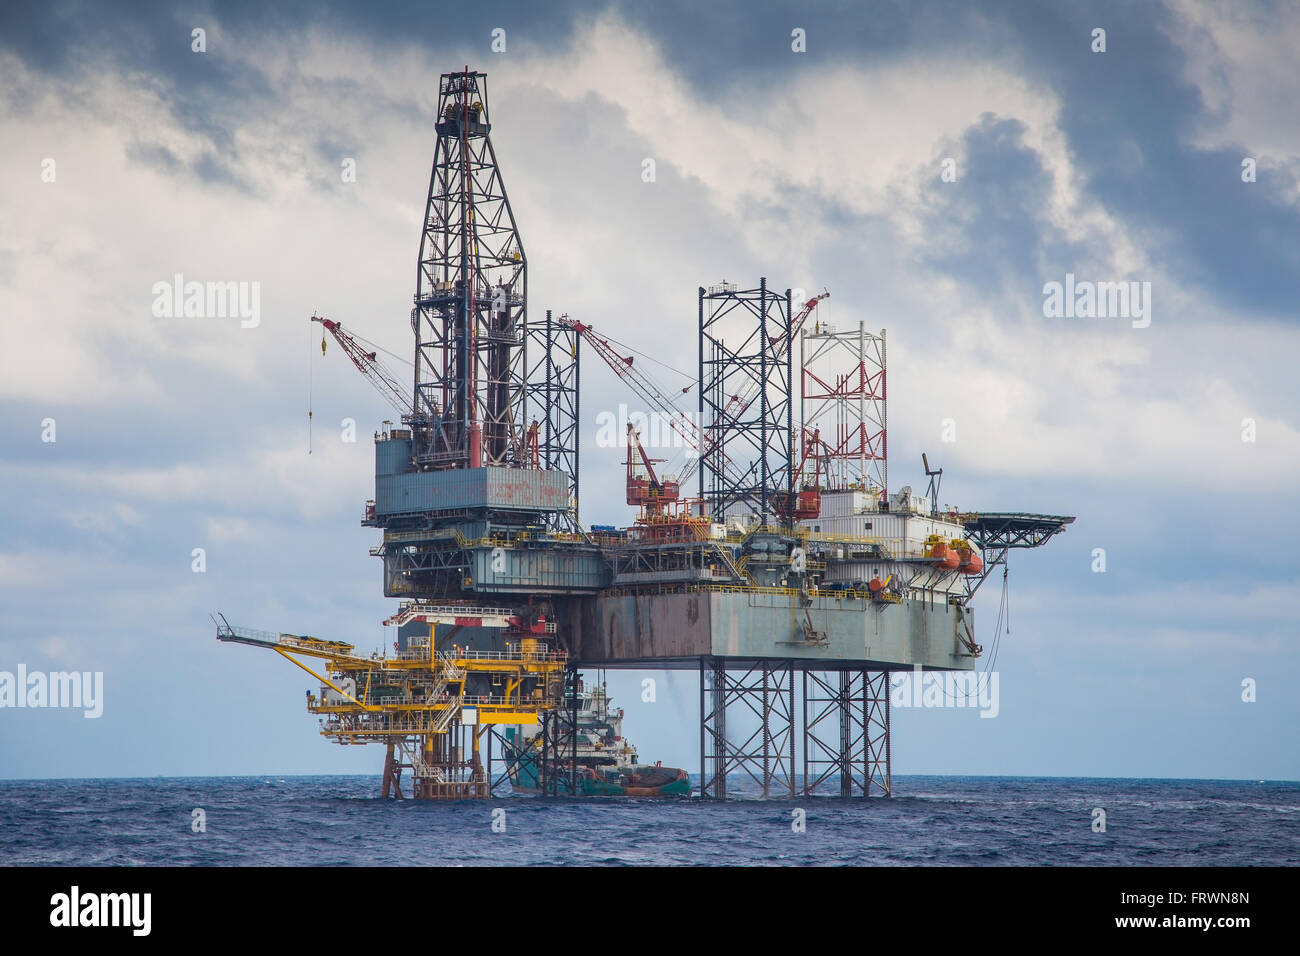 oil and gas drilling rig work over remote wellhead